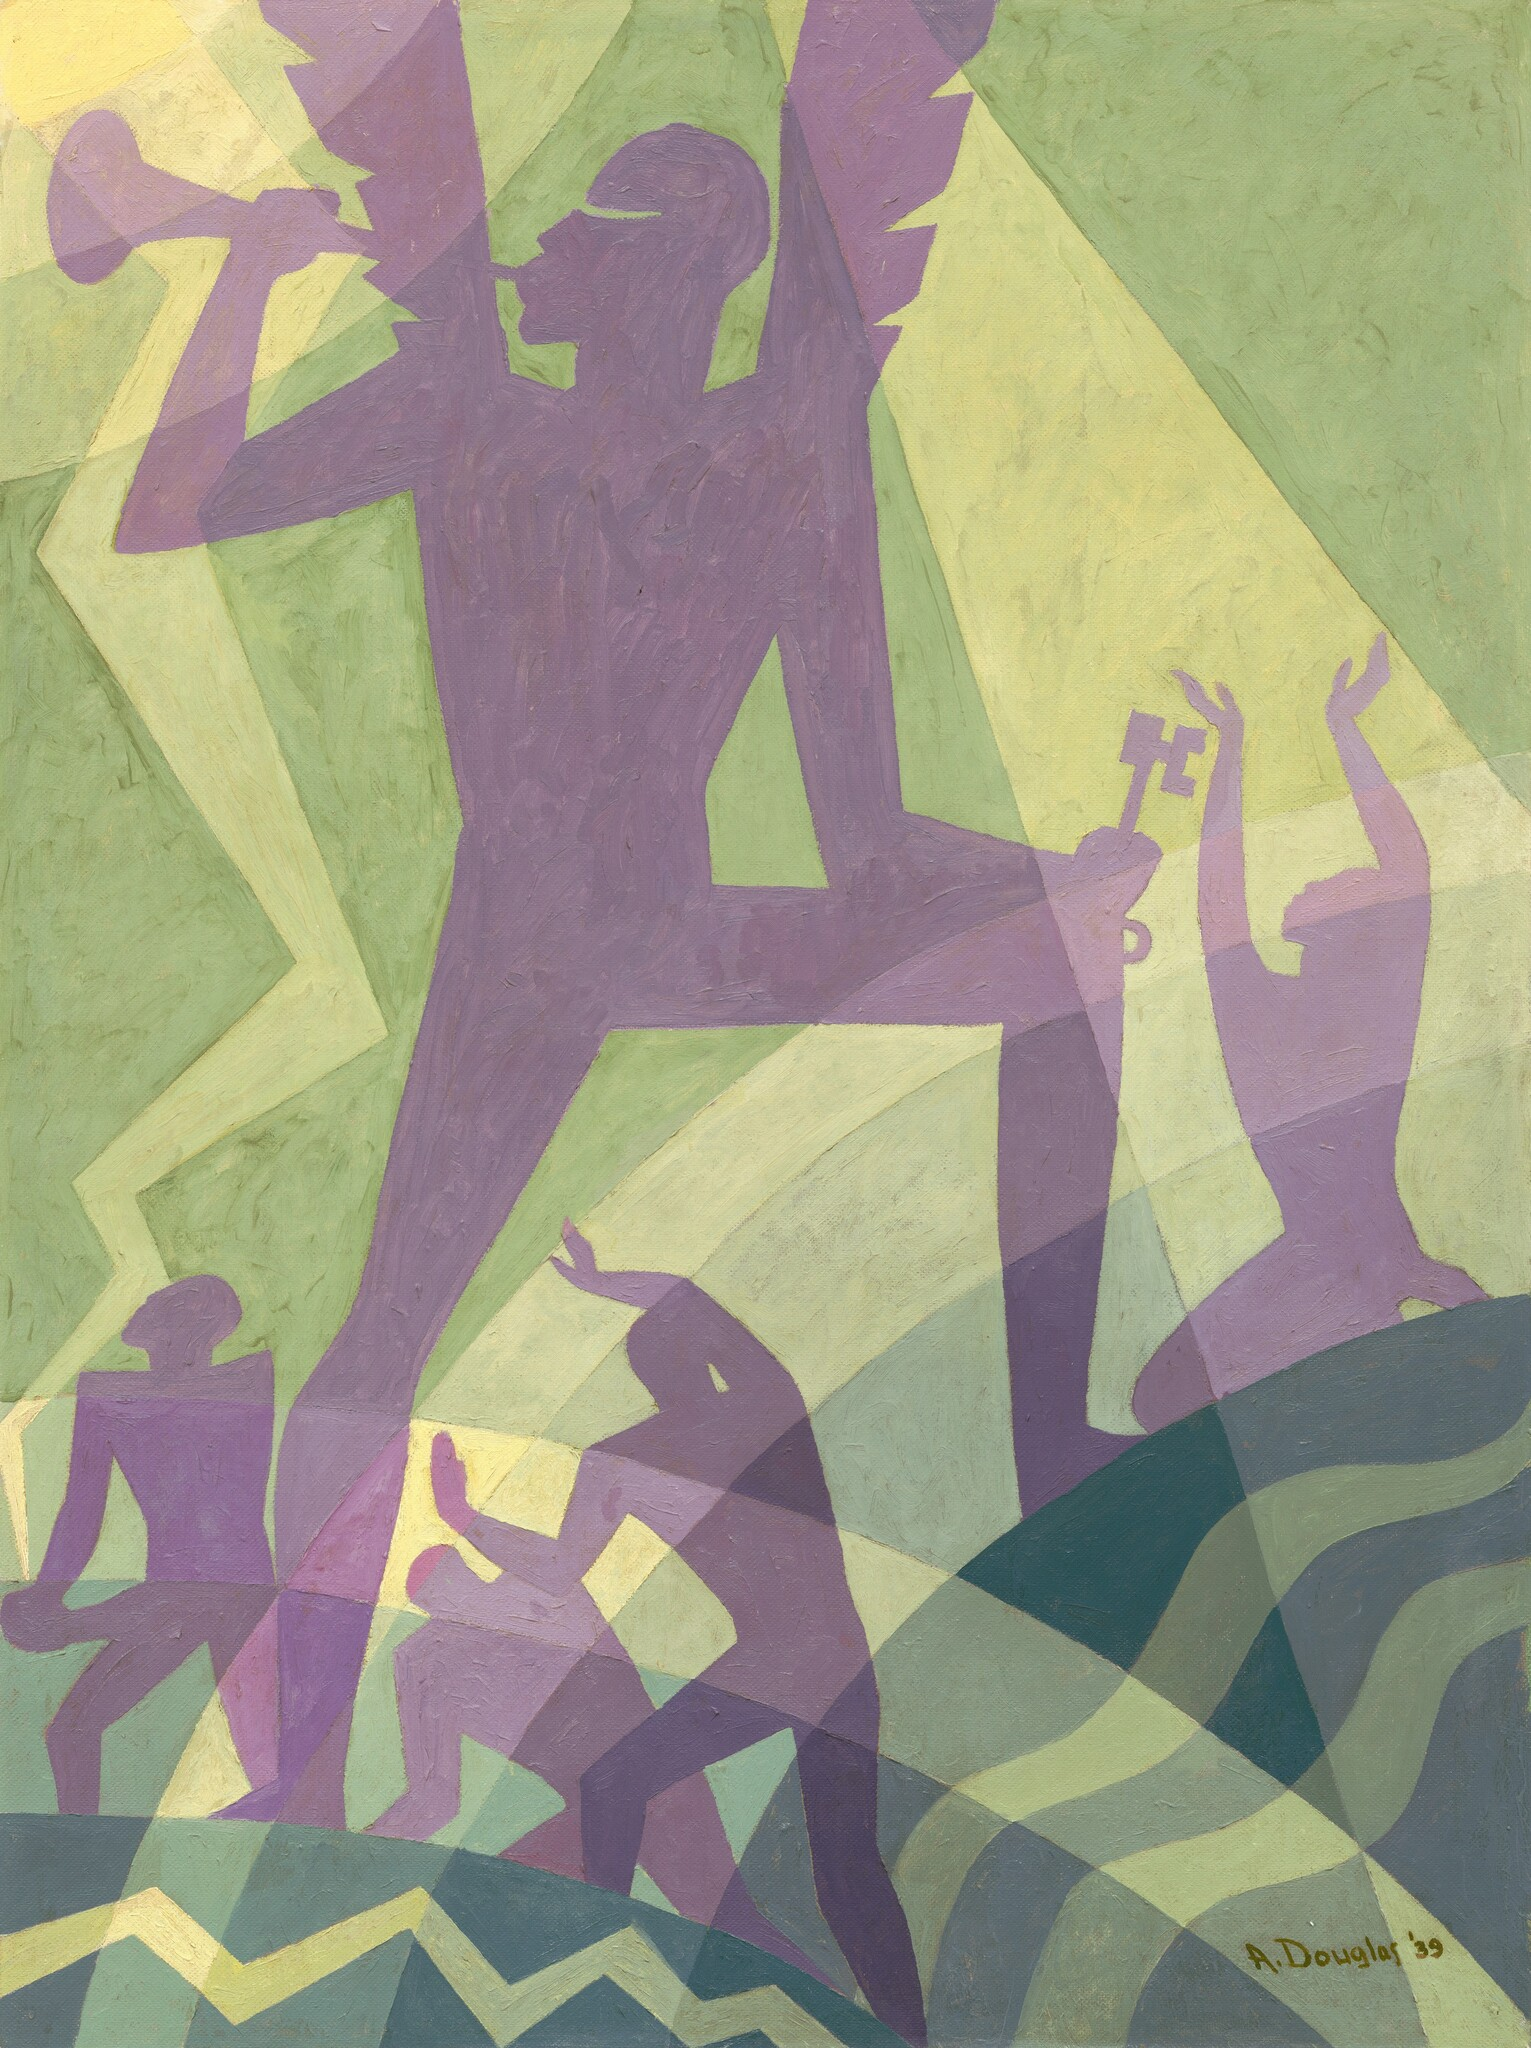 The Judgment Day, 1939 — Aaron Douglas